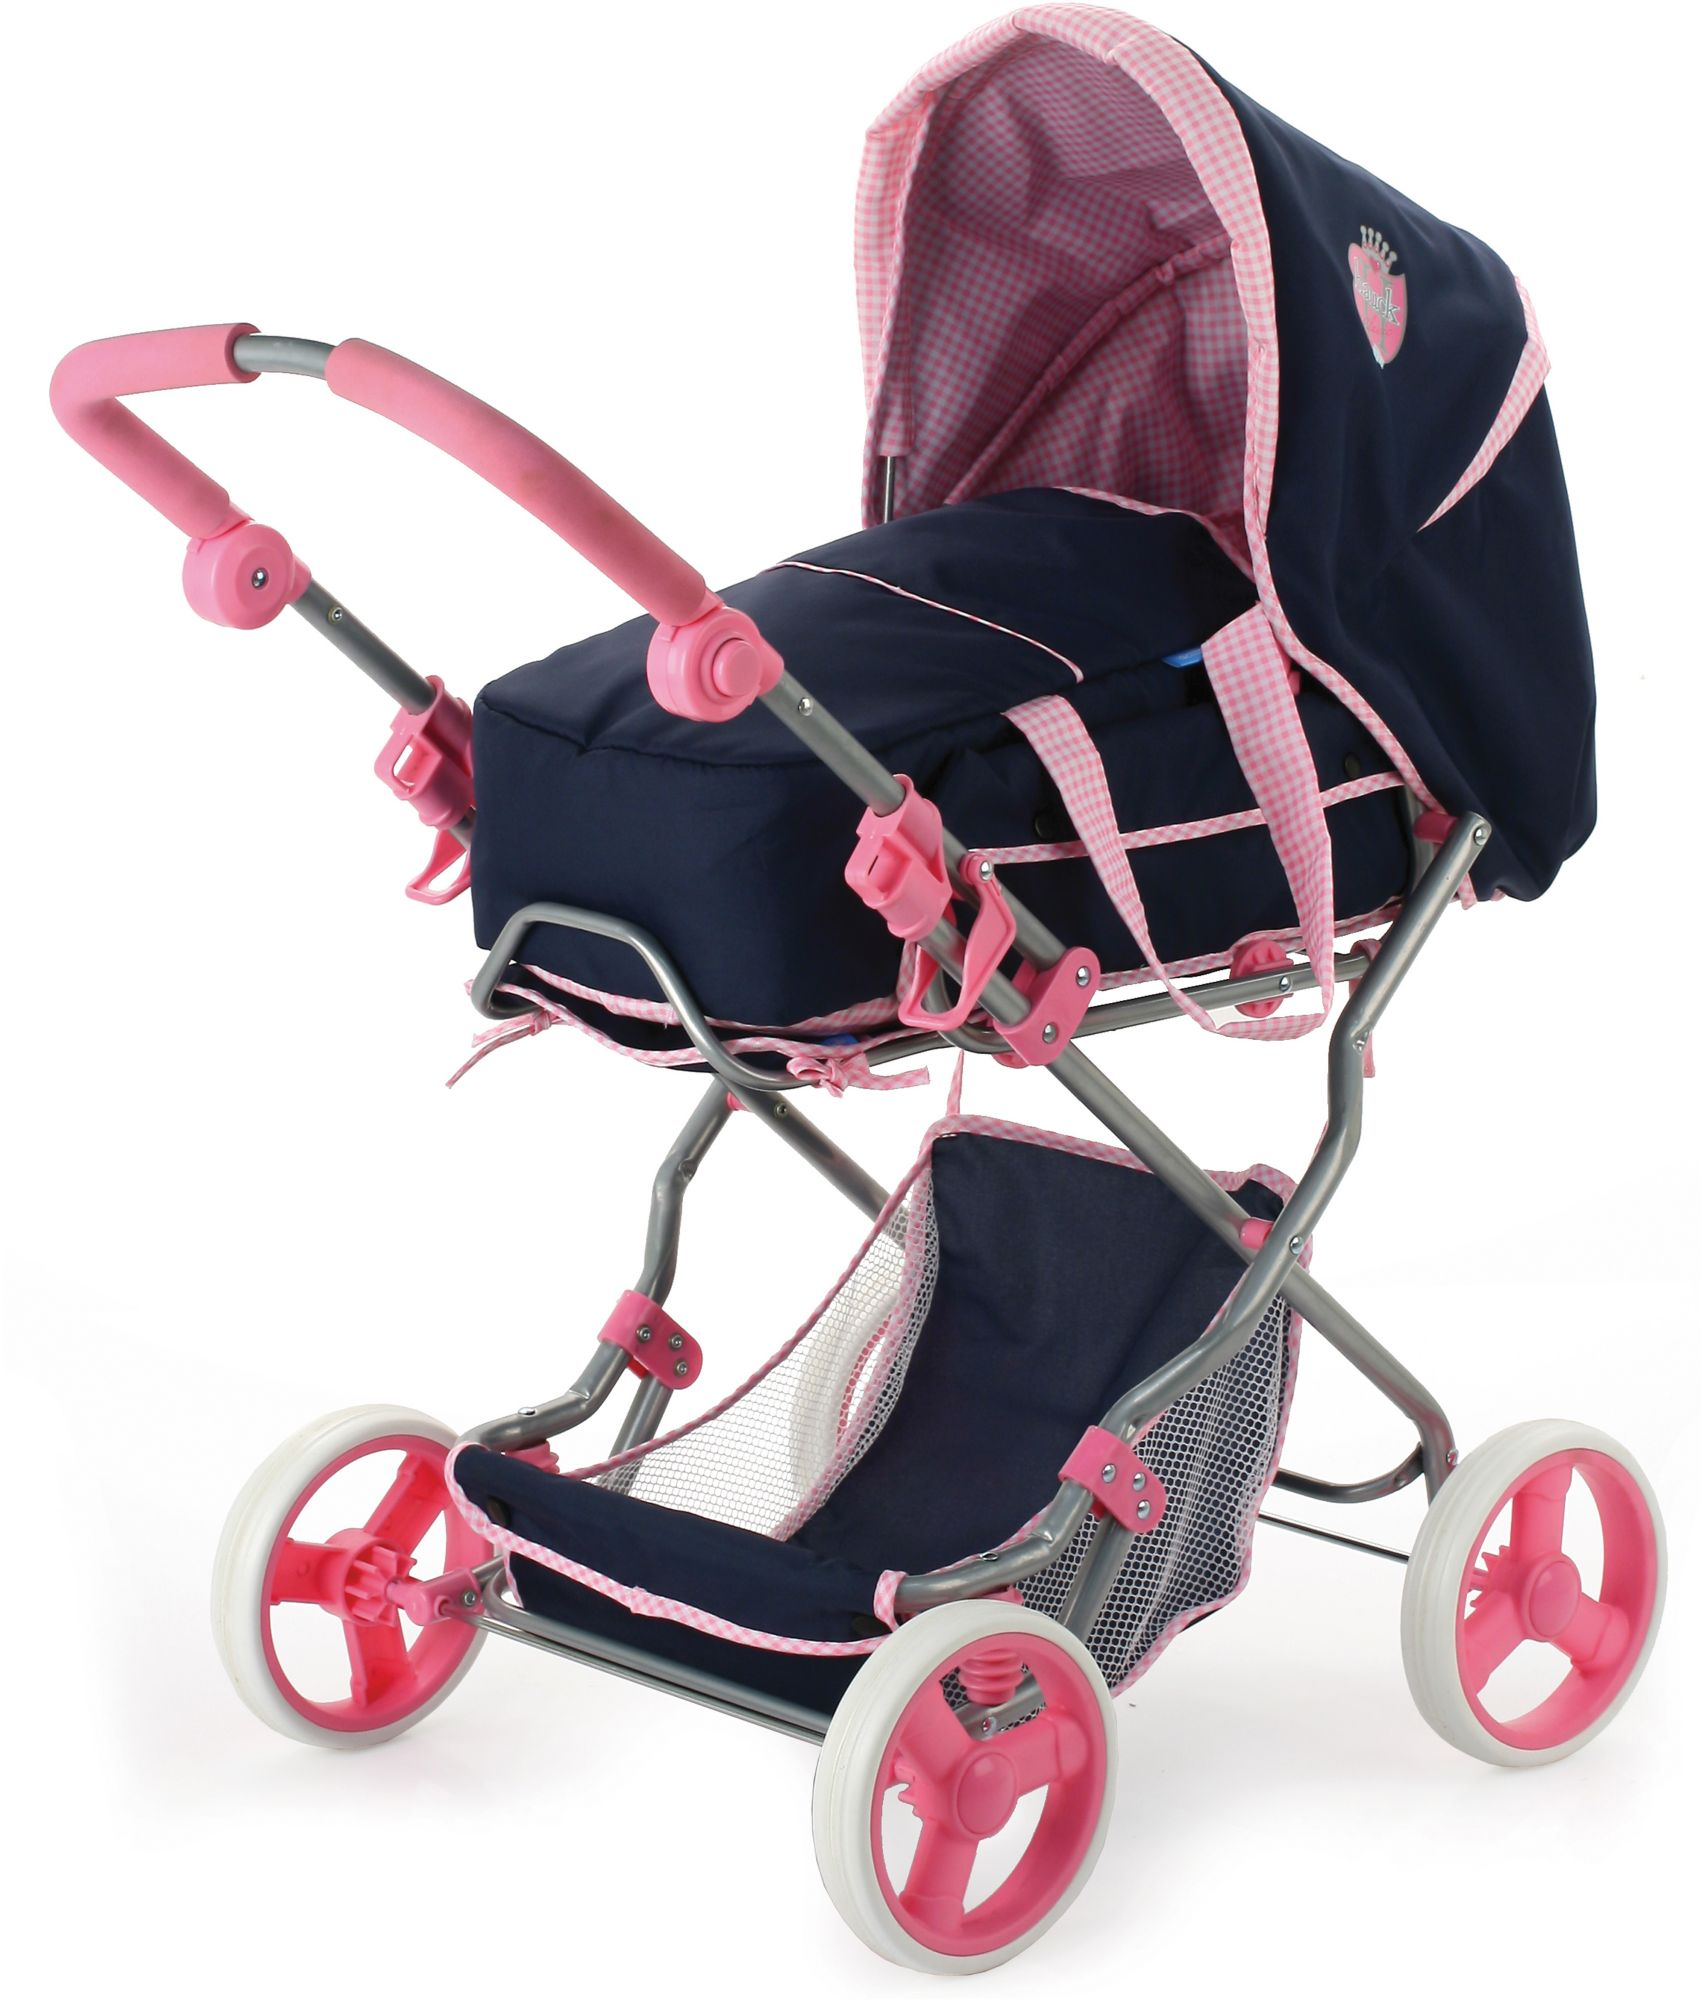 HAUCK TOYS FOR KIDS hauck TOYS FOR KIDS Puppenwagen, »Julia, Classic Navy«